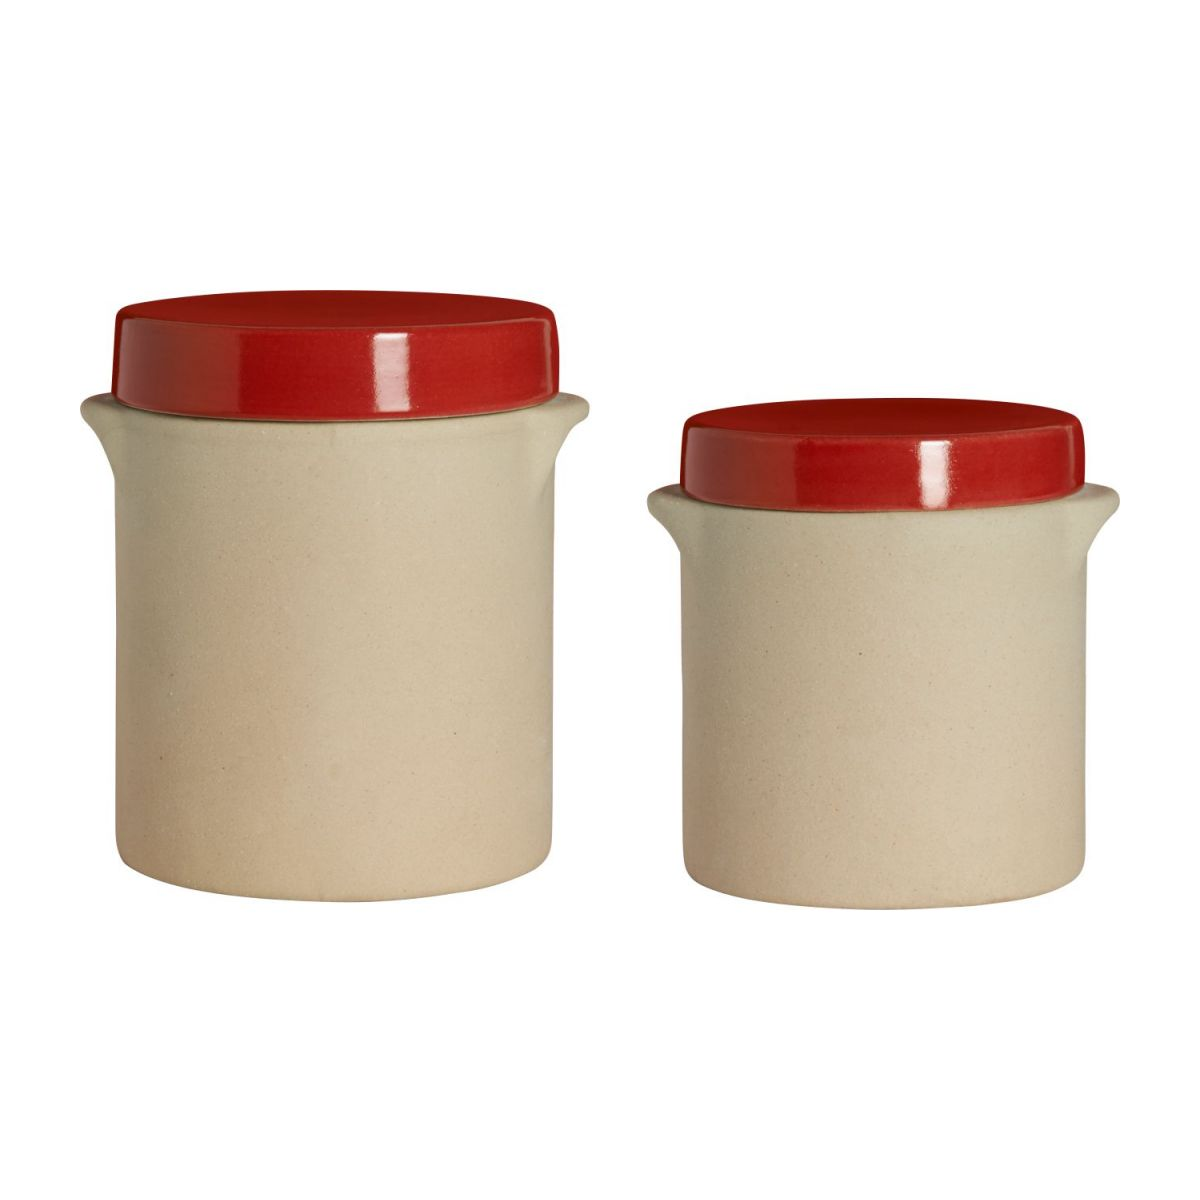 Box made in sandstone - 1L, natural and red n°9